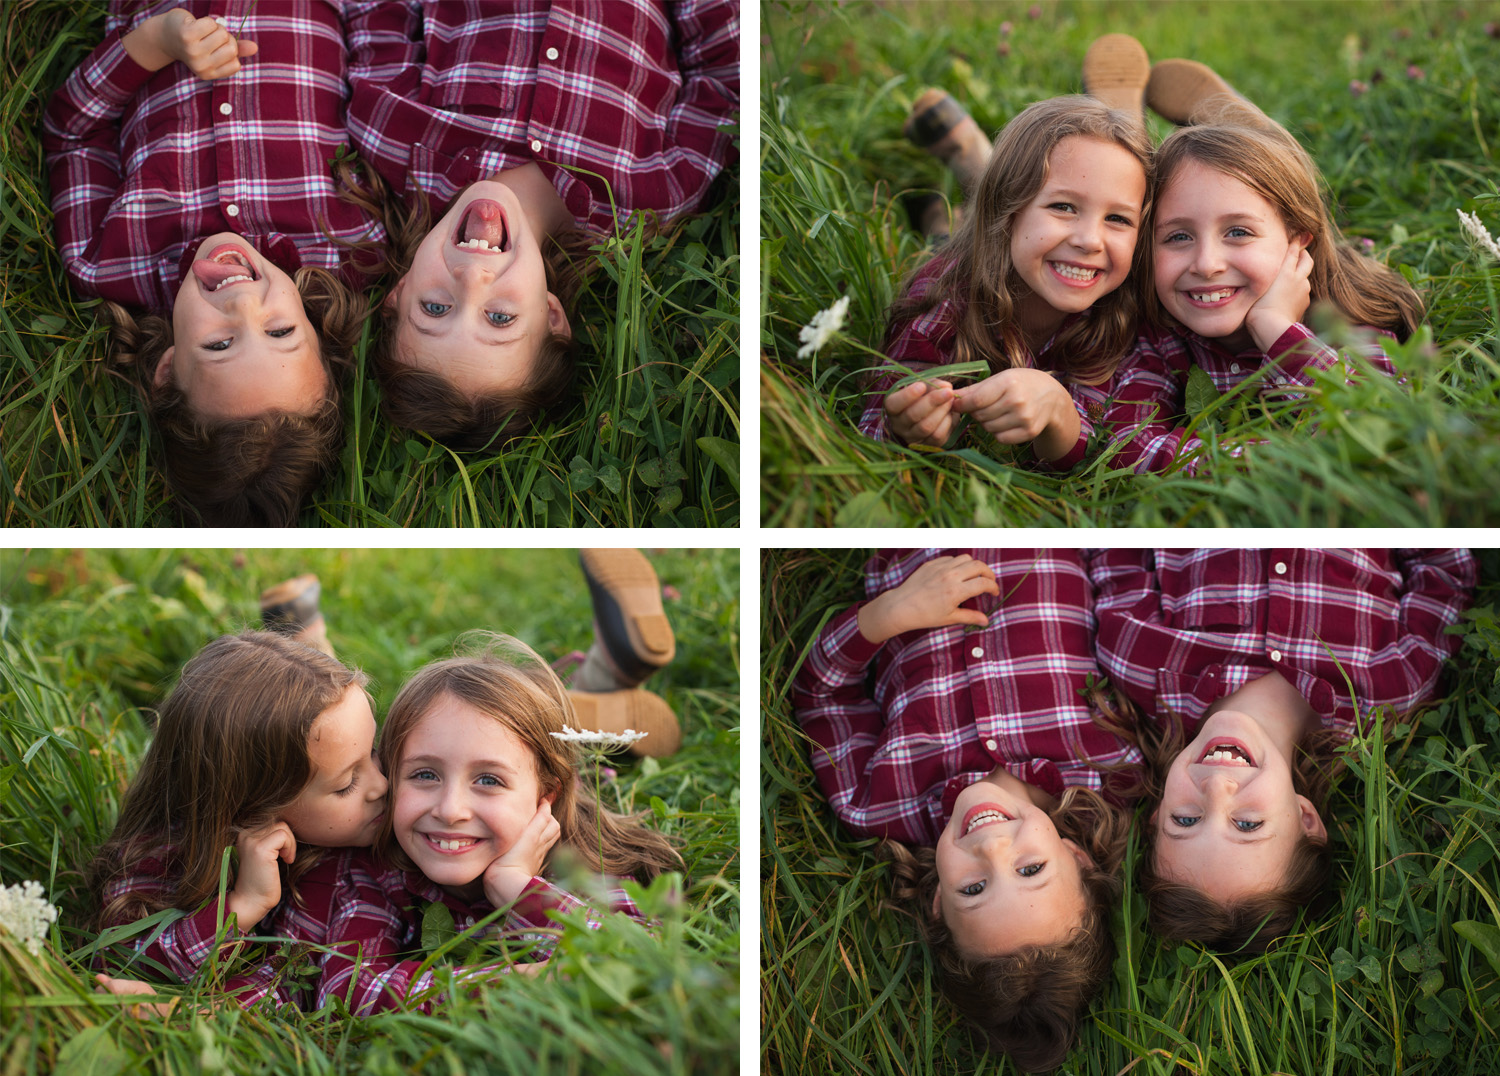 Collage of close up photos of two sisters laying in the grass, smiling and making silly faces.